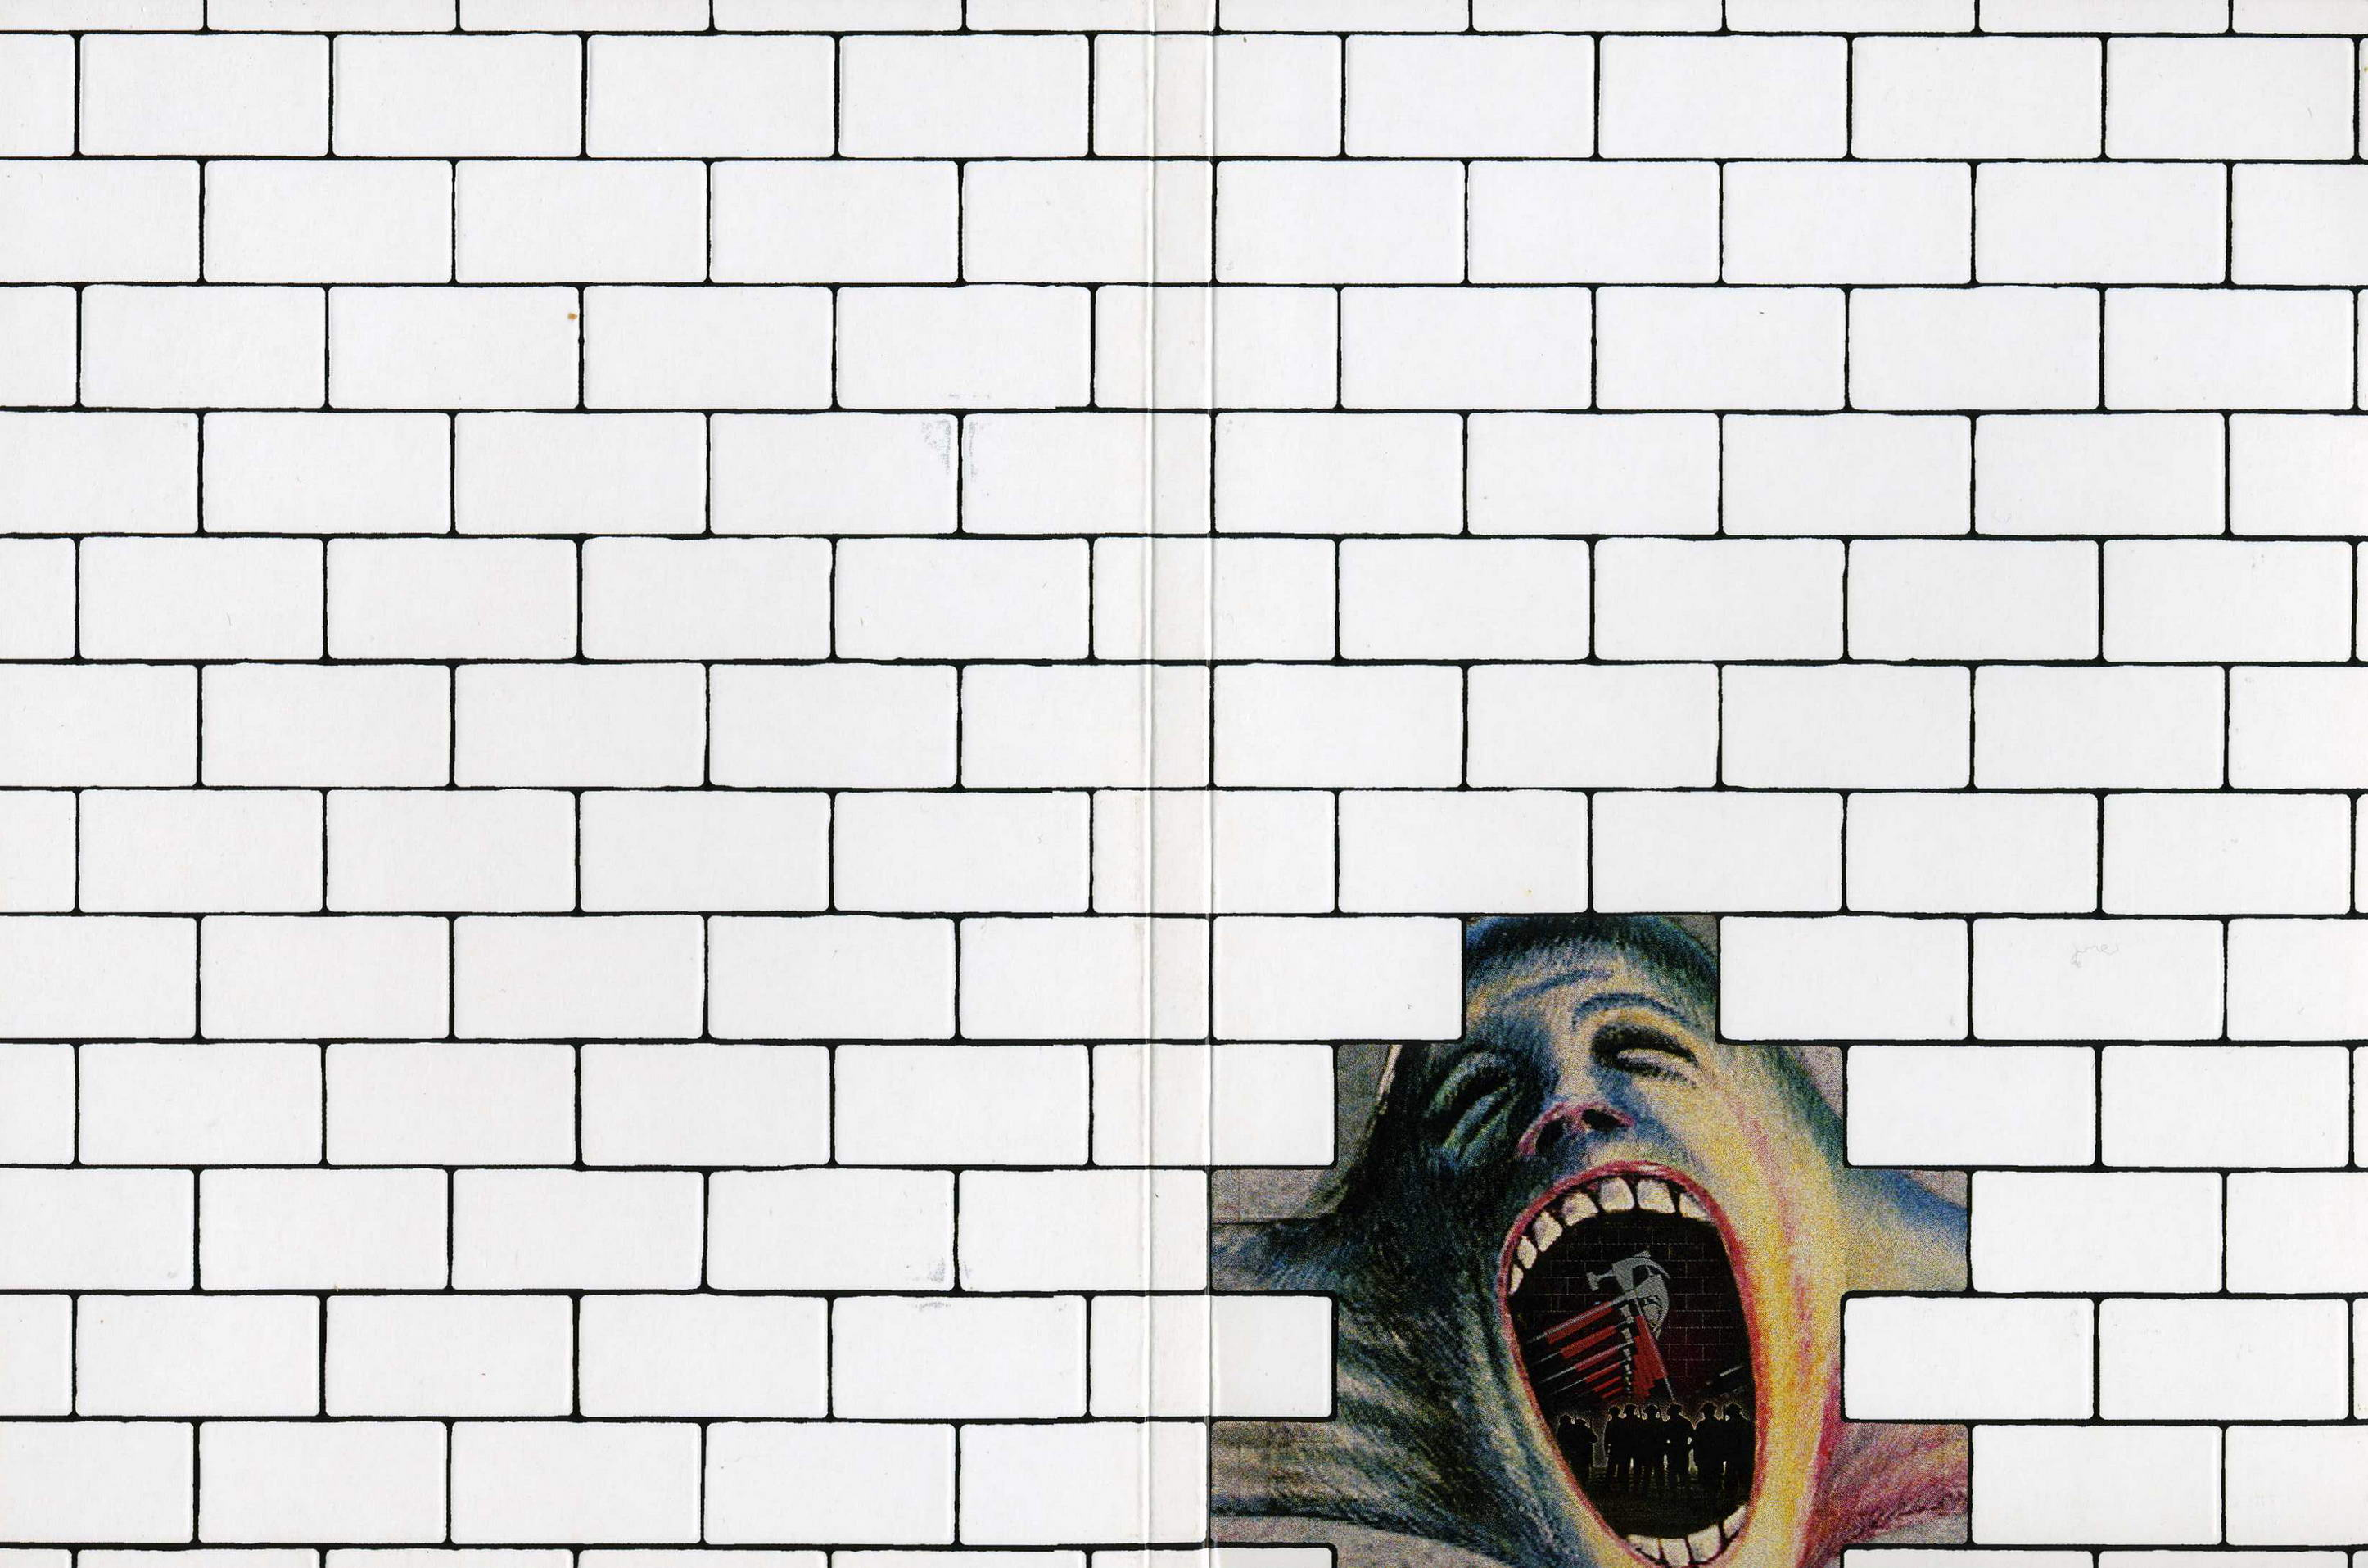 http://www.doohan-covers.com/inlay/Pink_floyd_the_wall.jpg